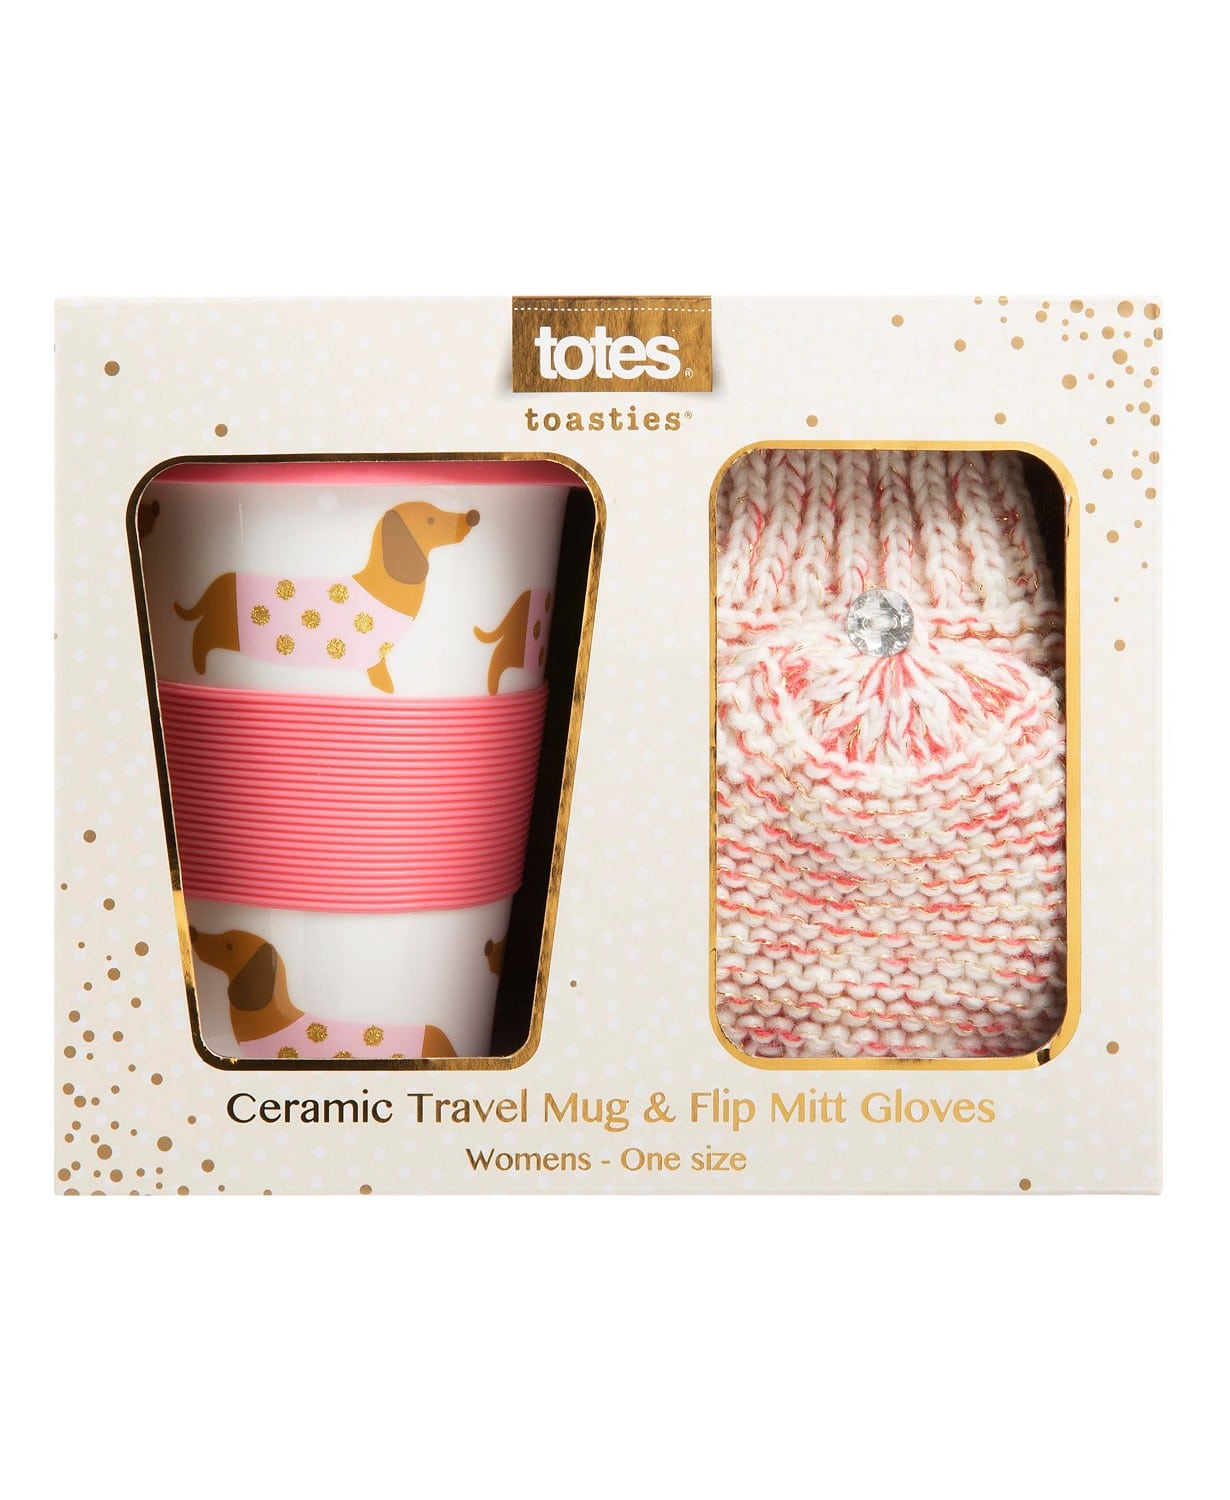 Bring the coffee or cocoa lover in your life some extra cheer this holiday season with the Travel Mug and Knit Flip Mitten Set! Our festive travel mug is both easy to clean and easy on the environment.